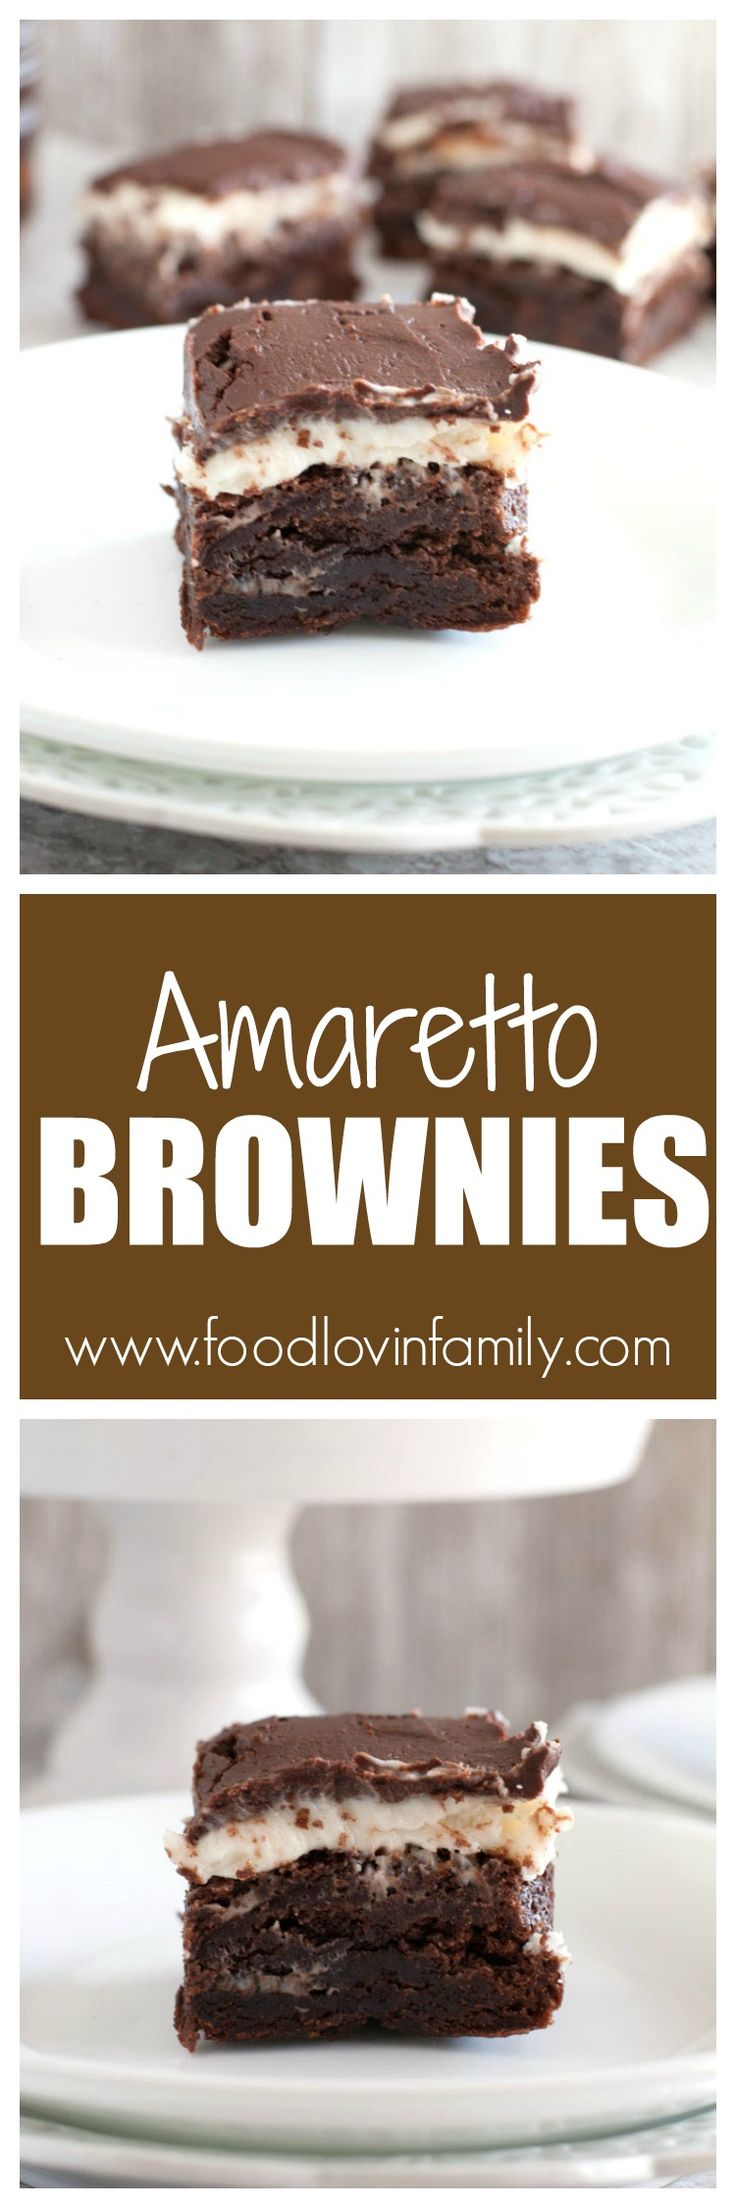 Amaretto Brownies. Fudgy brownies topped with Amaretto Frosting and chocolate ganache.|Brownies|